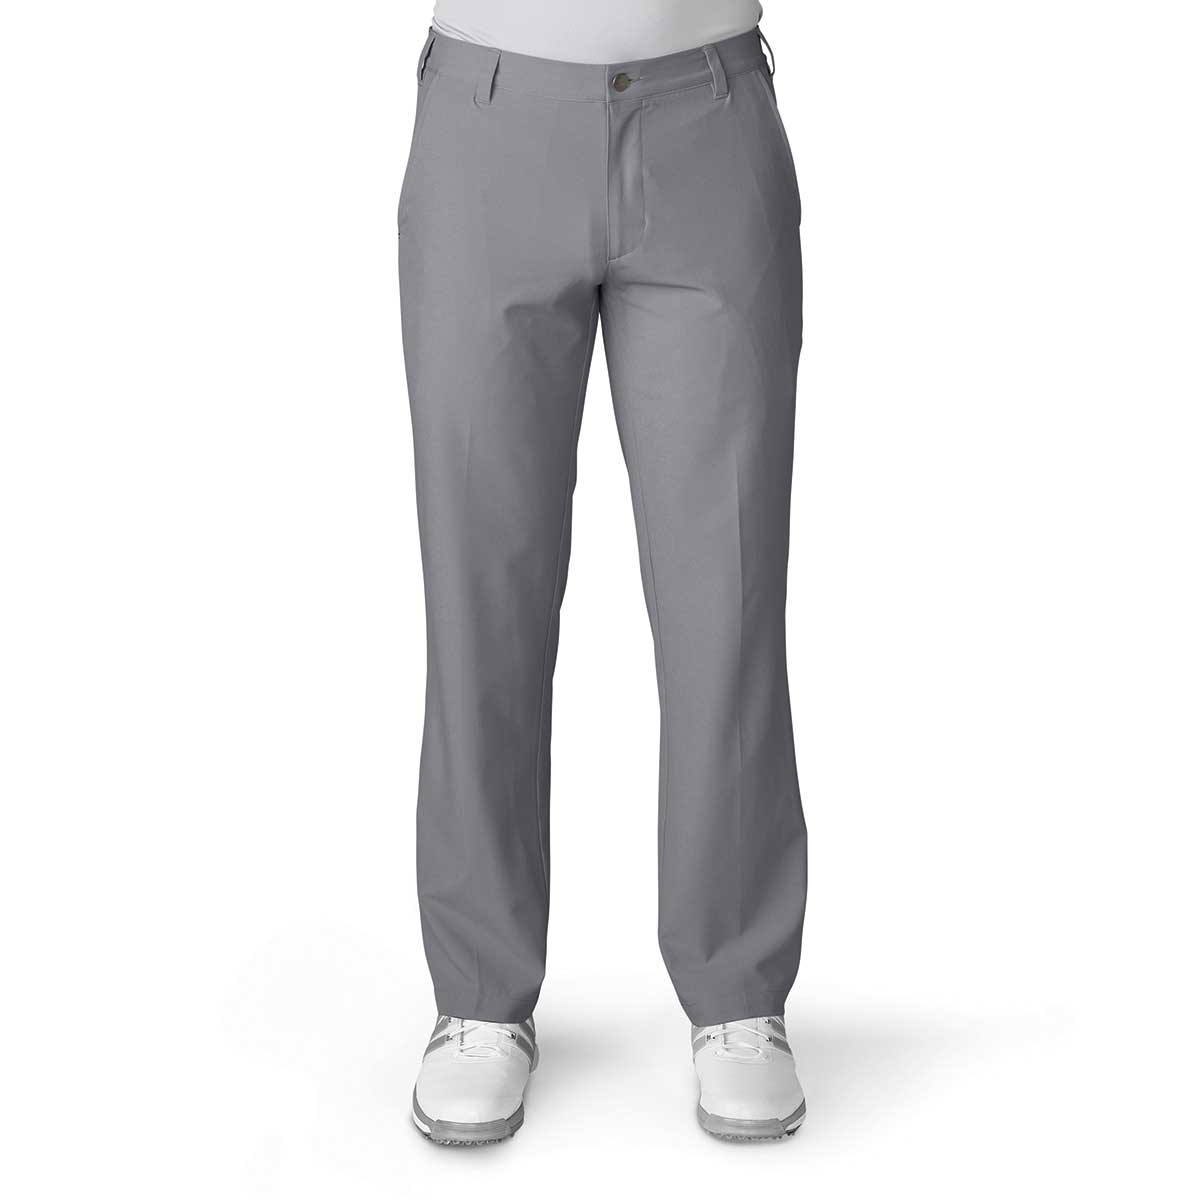 Adidas Ultimate 365 Fall Weight Pants - Grey